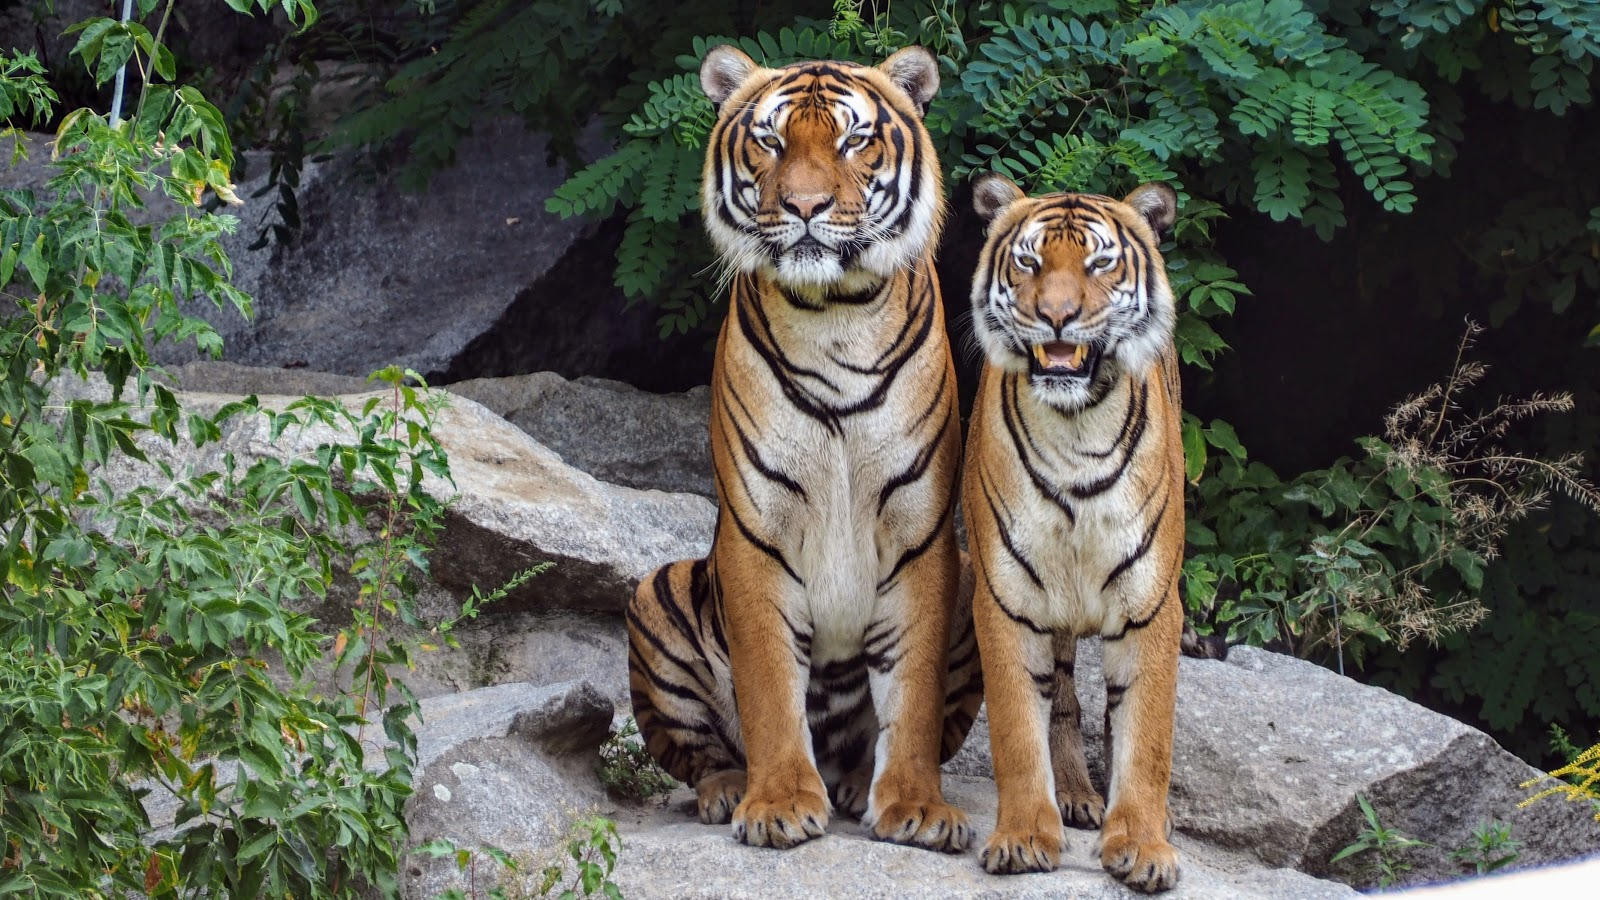 two-orange-tigers-sitting-beside-each-other-images